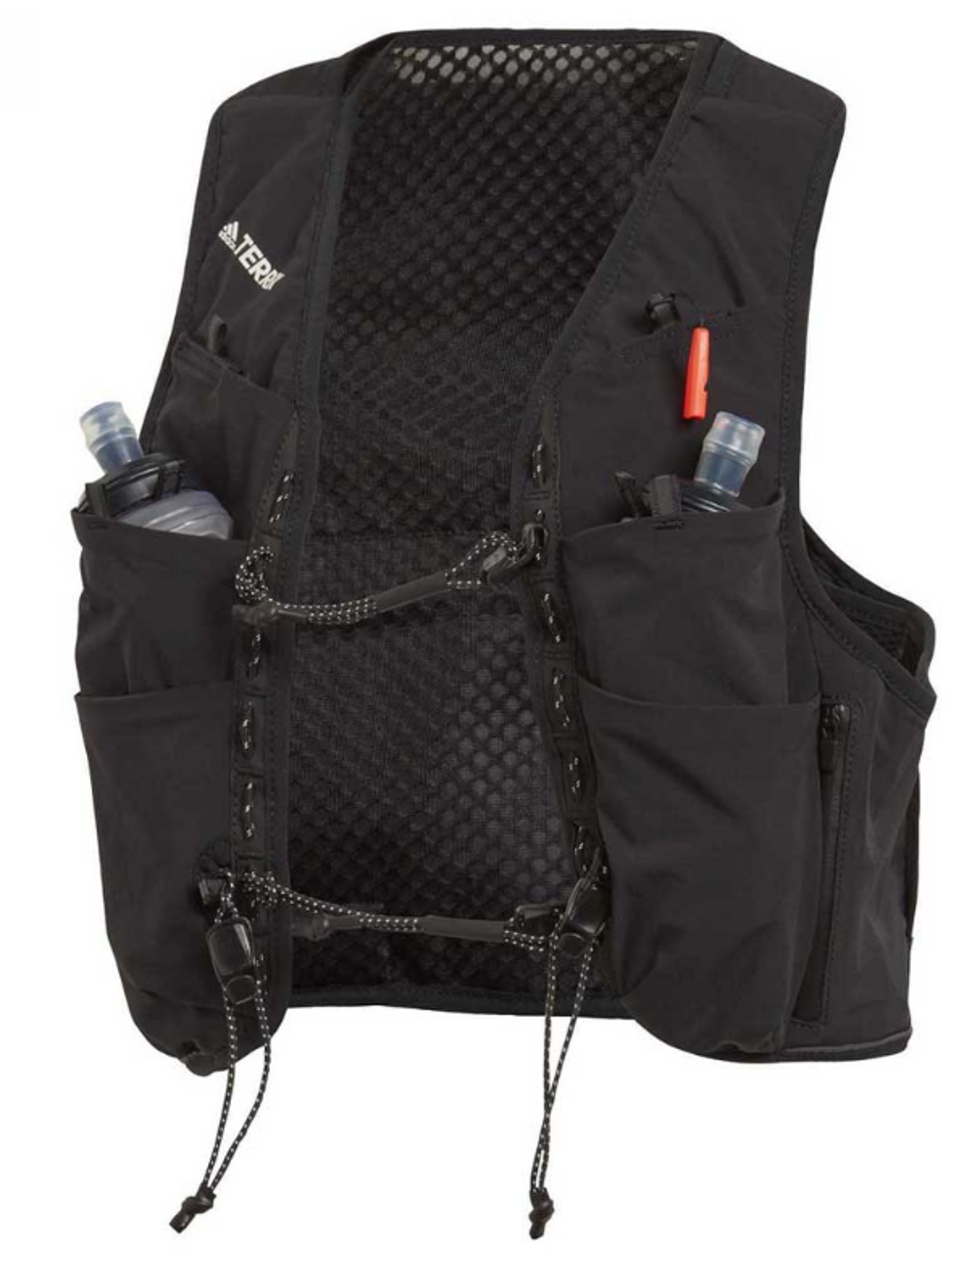 The Adidas Agravic has pouches for water on the front. Photo: Adidas